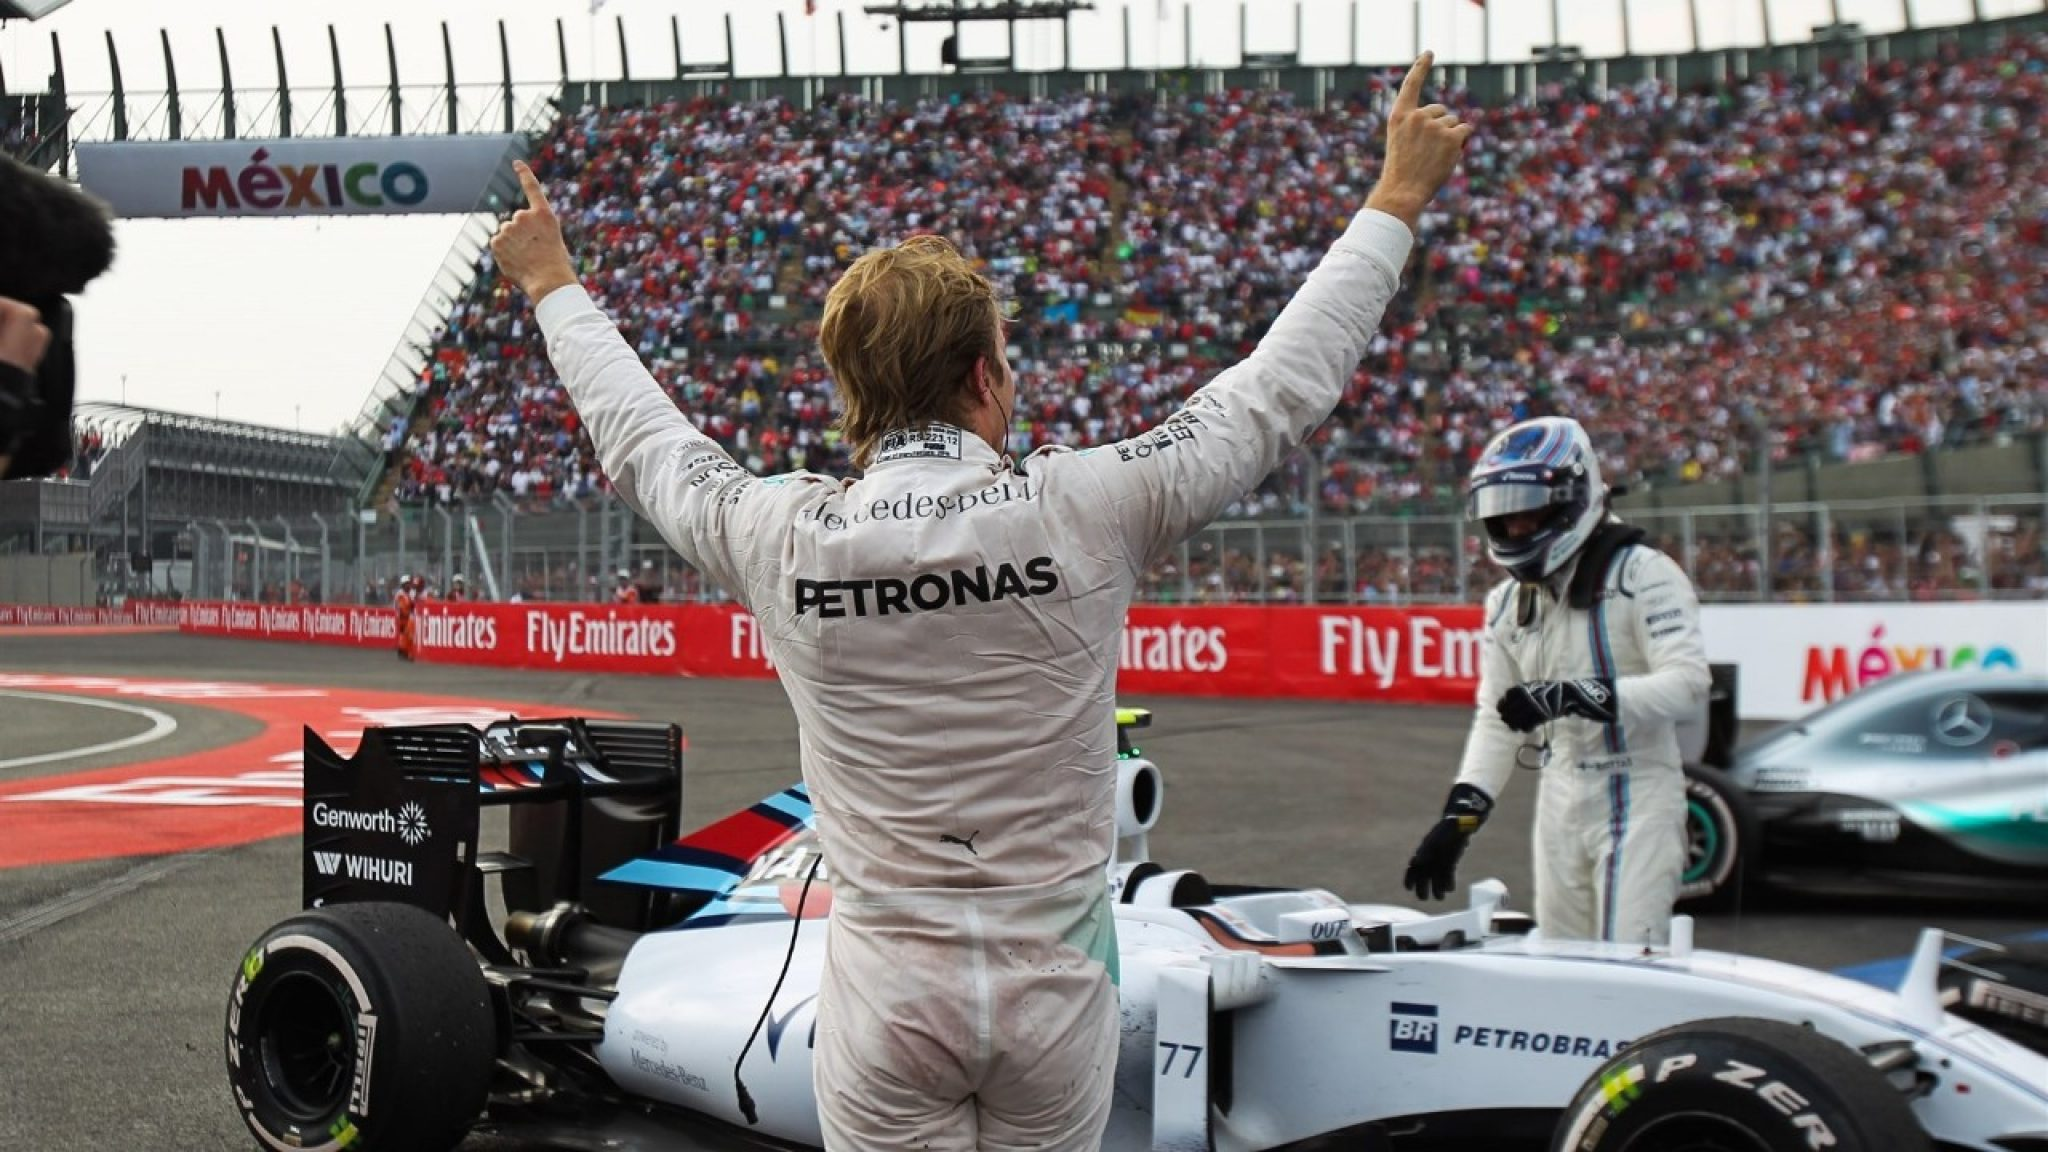 Nico Rosberg in Foro sol after winning the Mexico Grand Prix